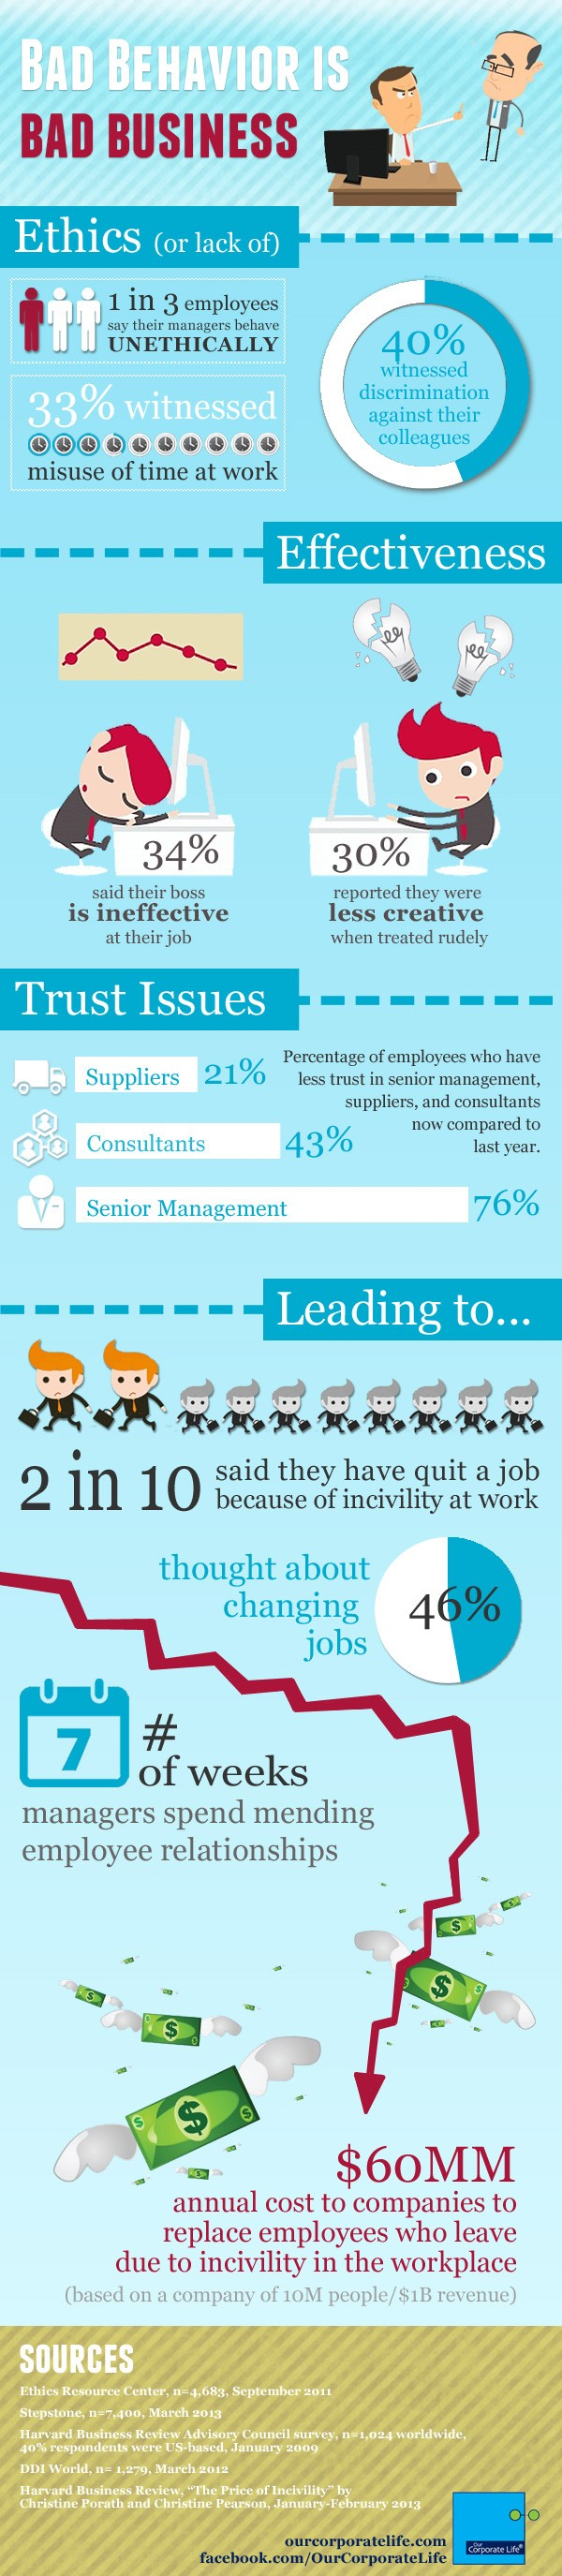 Infographic Our Corporate Life Bad Behavior is Bad Business